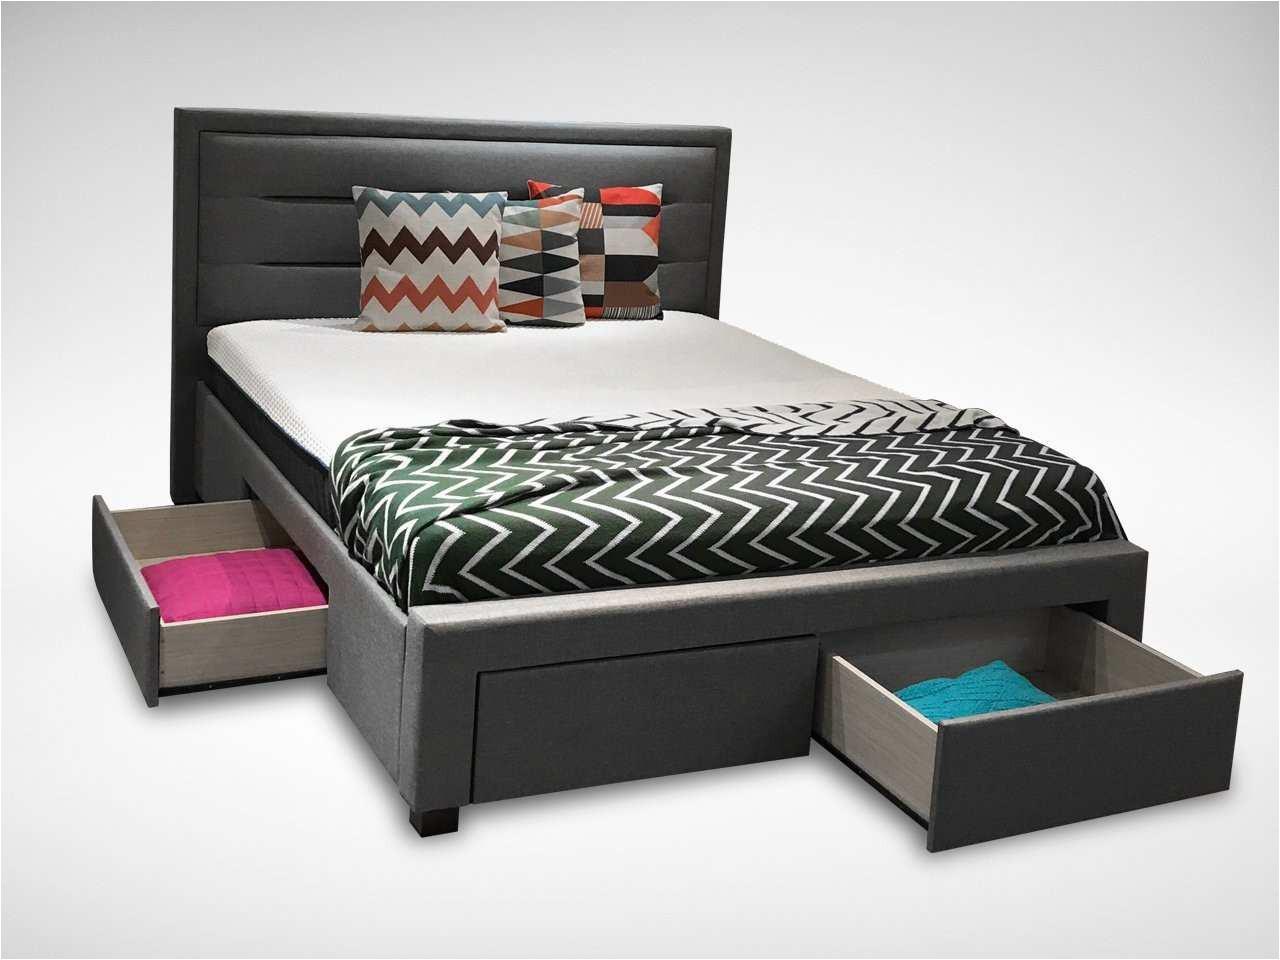 foldable bed frame queen best of stash bed frame king of 38 awesome foldable bed